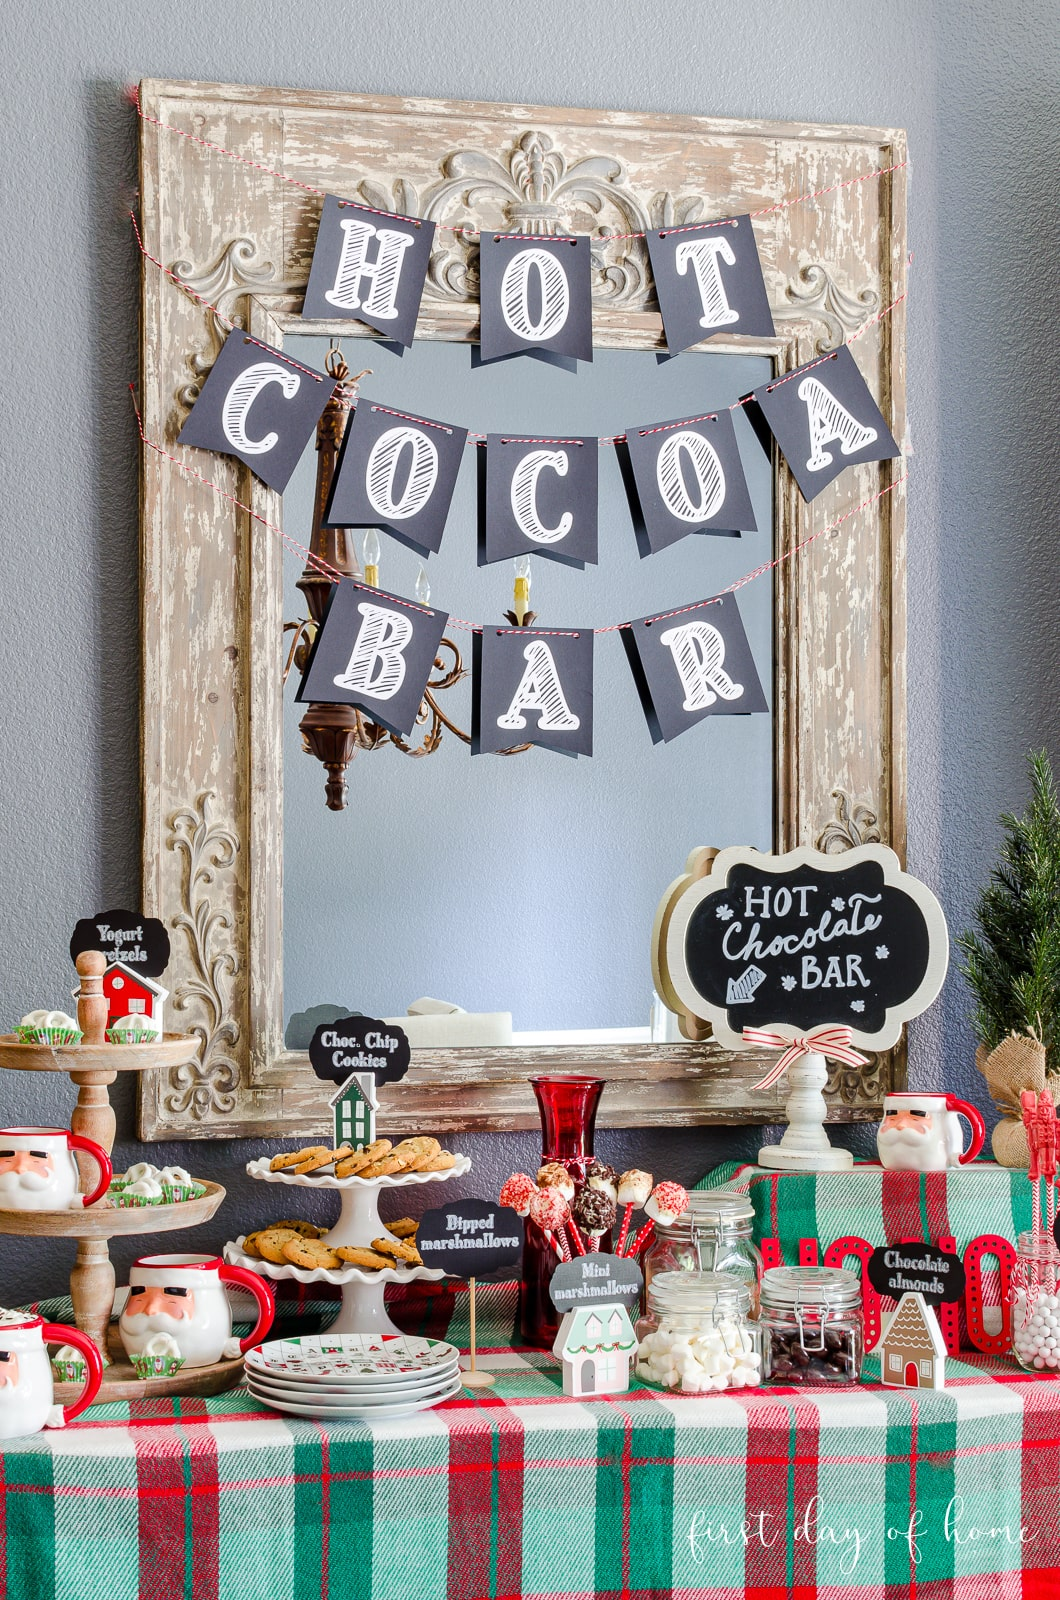 Hot cocoa bar ideas with chalkboard signs, cocoa bar accessories like Spode plates and other decor and toppings